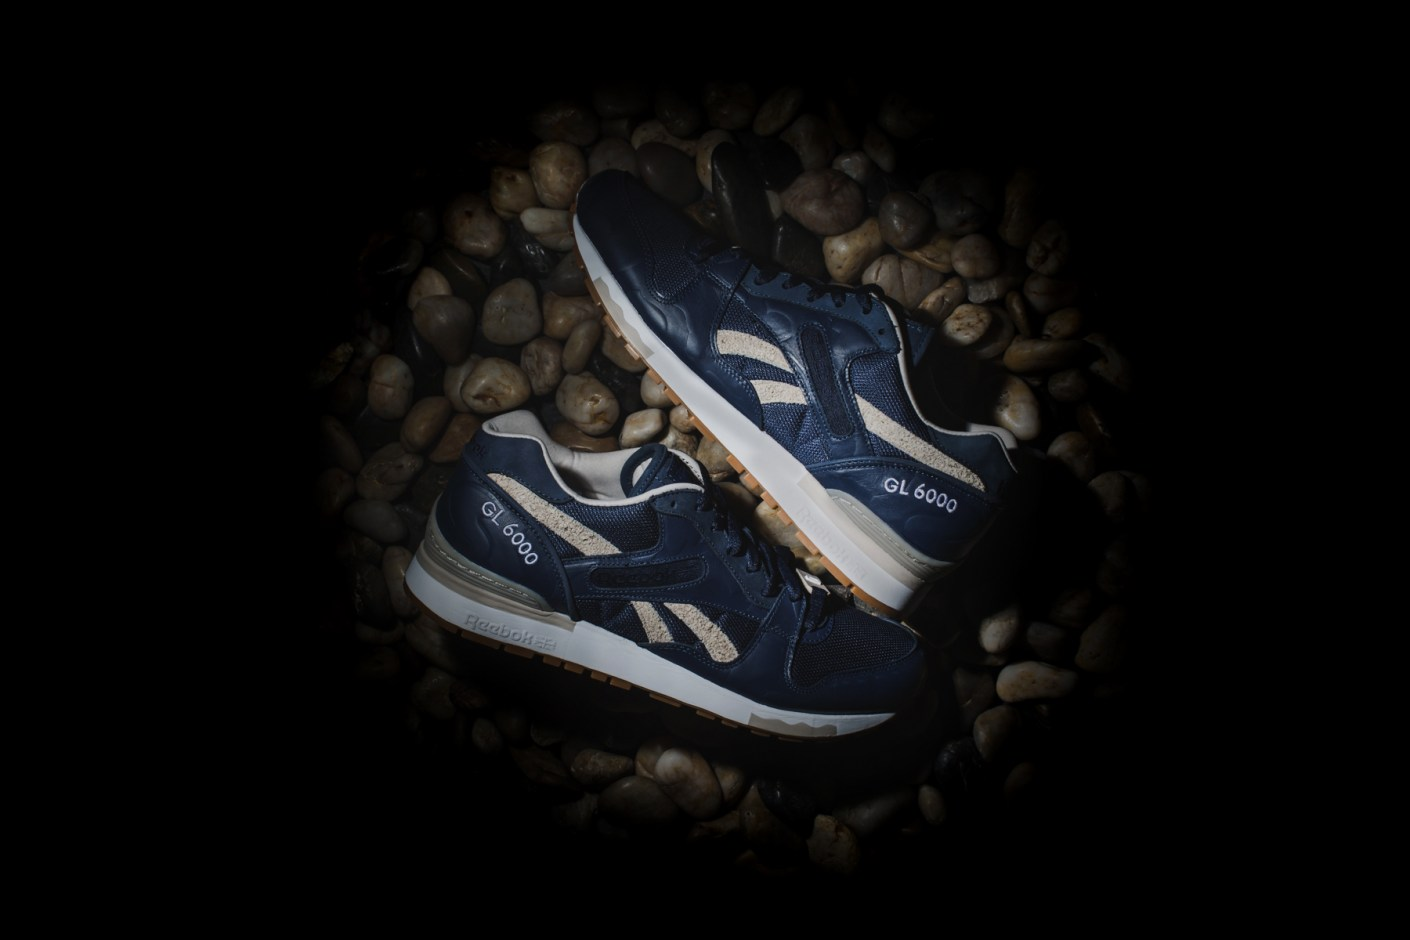 Image of Distinct Life x Reebok GL 6000 Sneakers